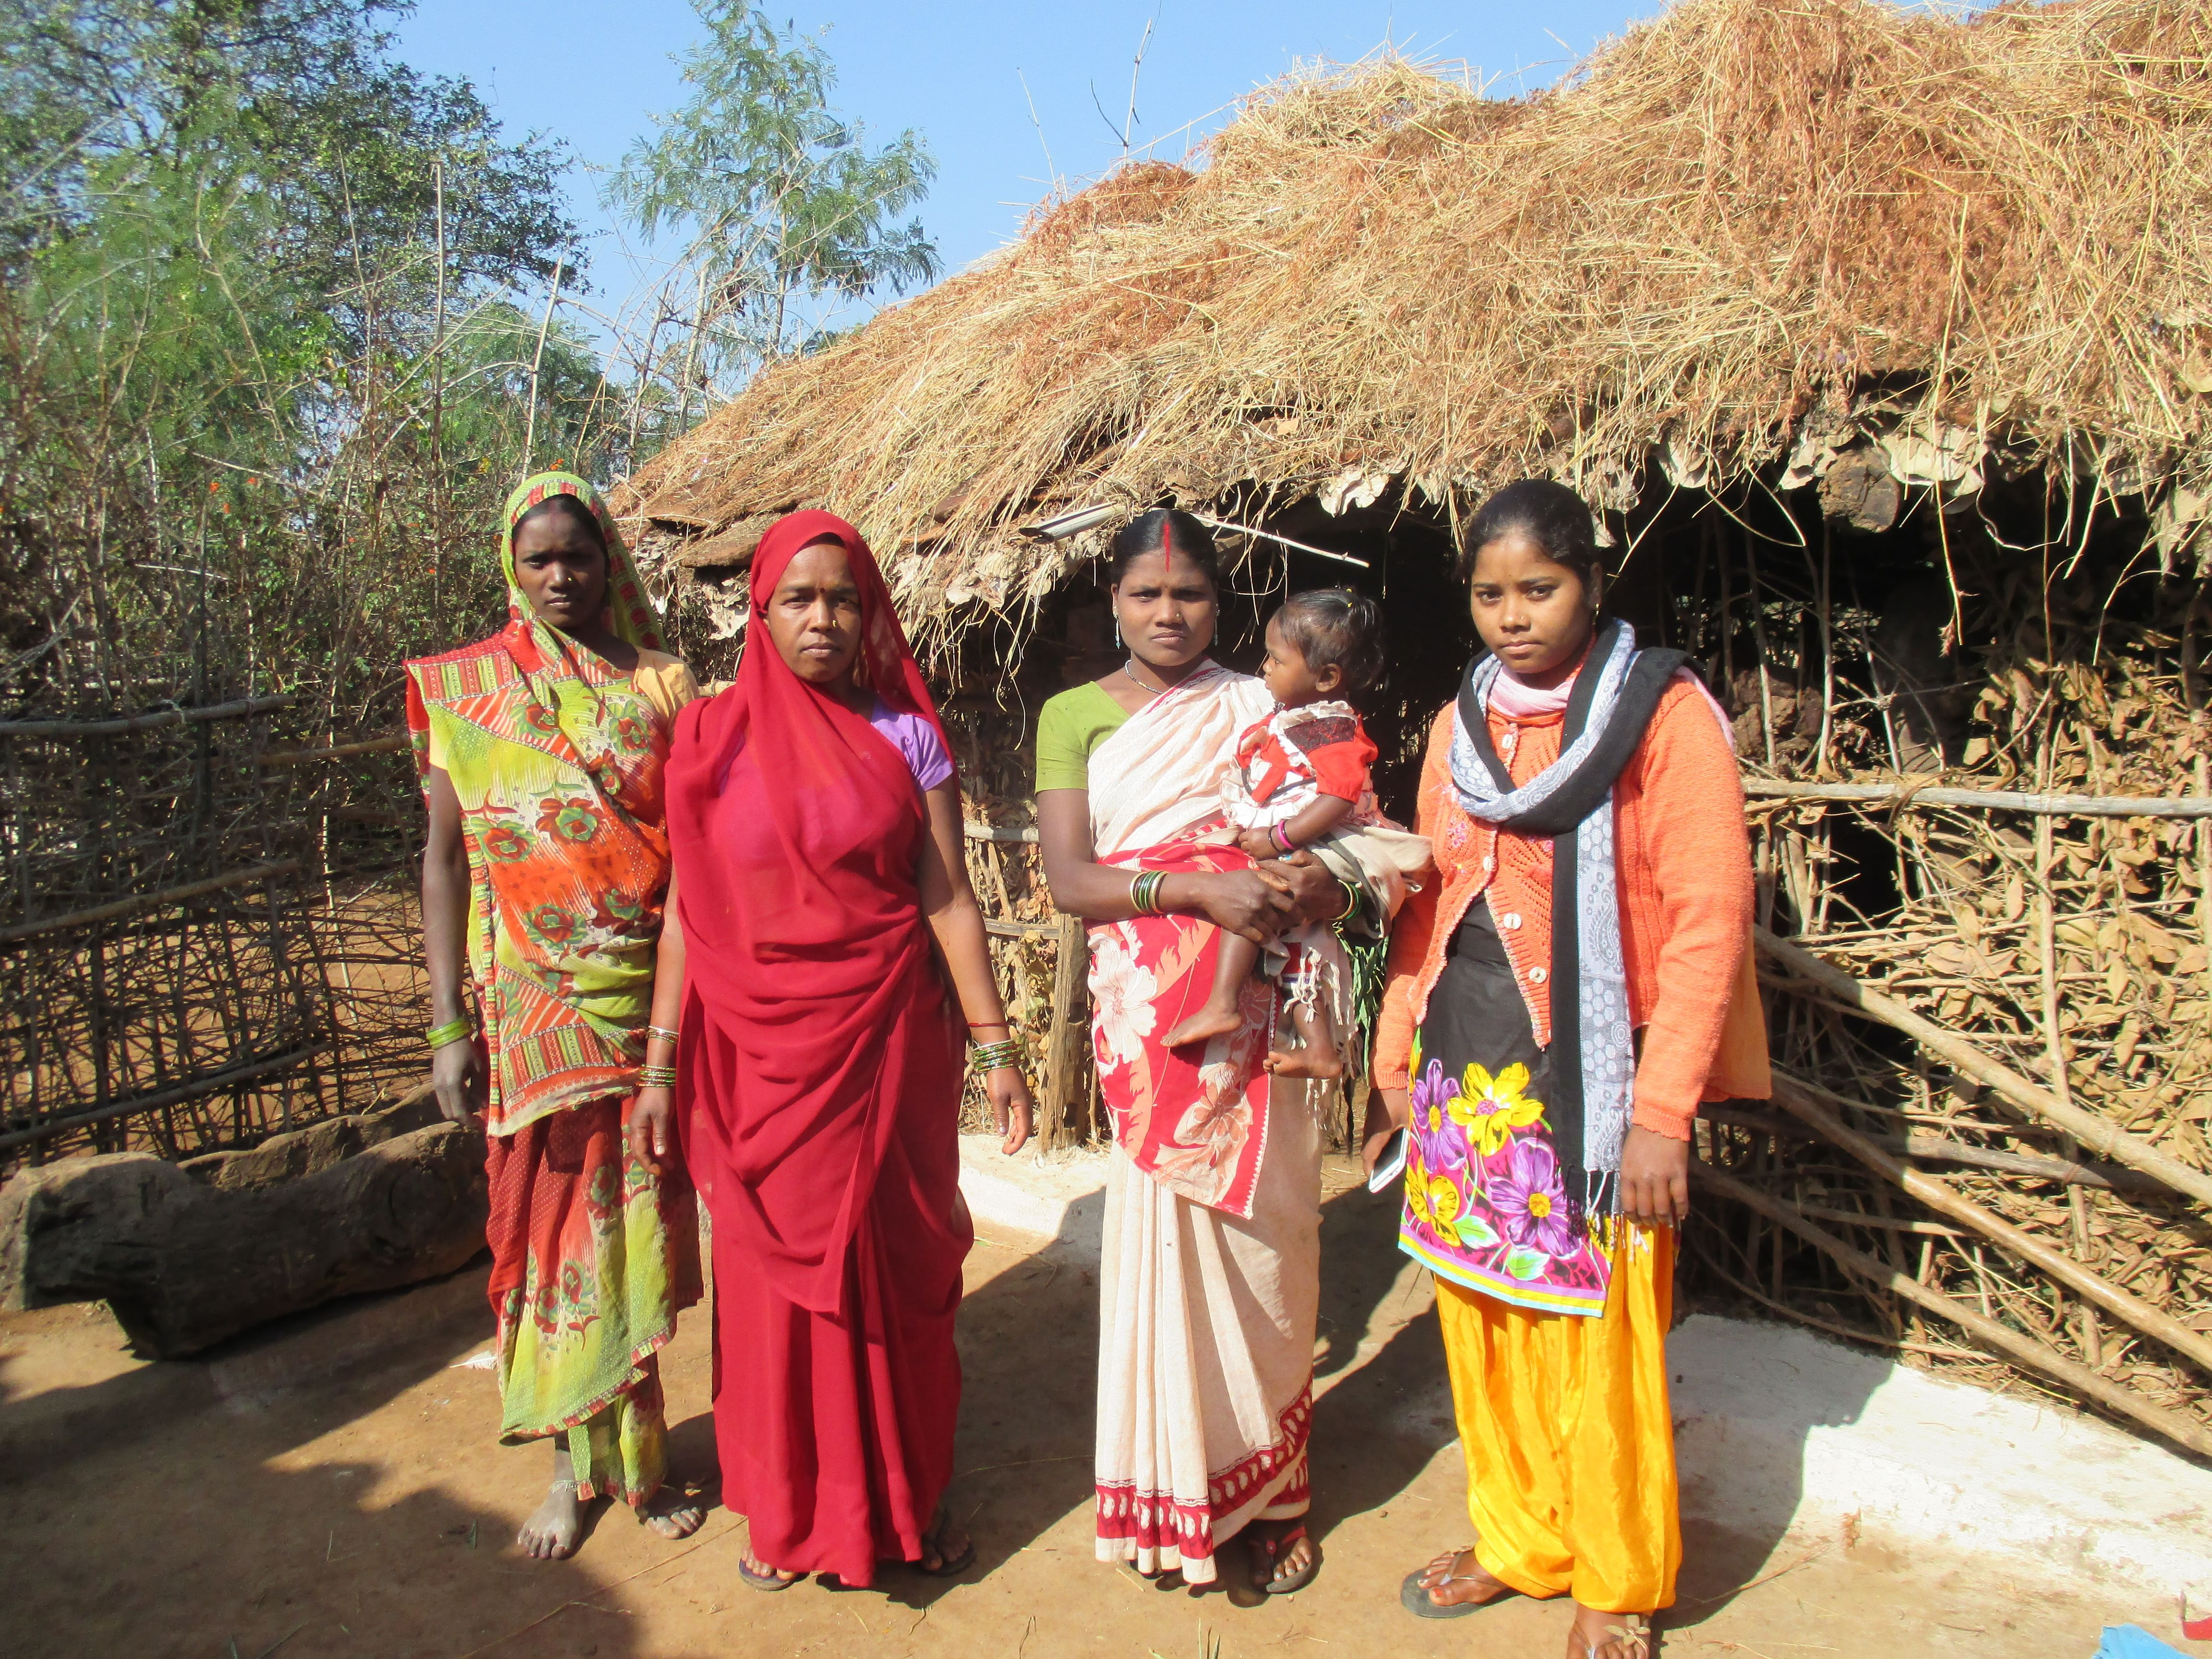 Kusumlata Bhavedi (extreme right), 25, of Bhatgaon village in Mandla district of Madhya Pradesh is an exceptional Gond tribal woman who is spreading awareness on issues like health and nutrition, education and rights to enable the local community to fight poverty and hunger. (Credit: Shuriah Niazi\WFS)